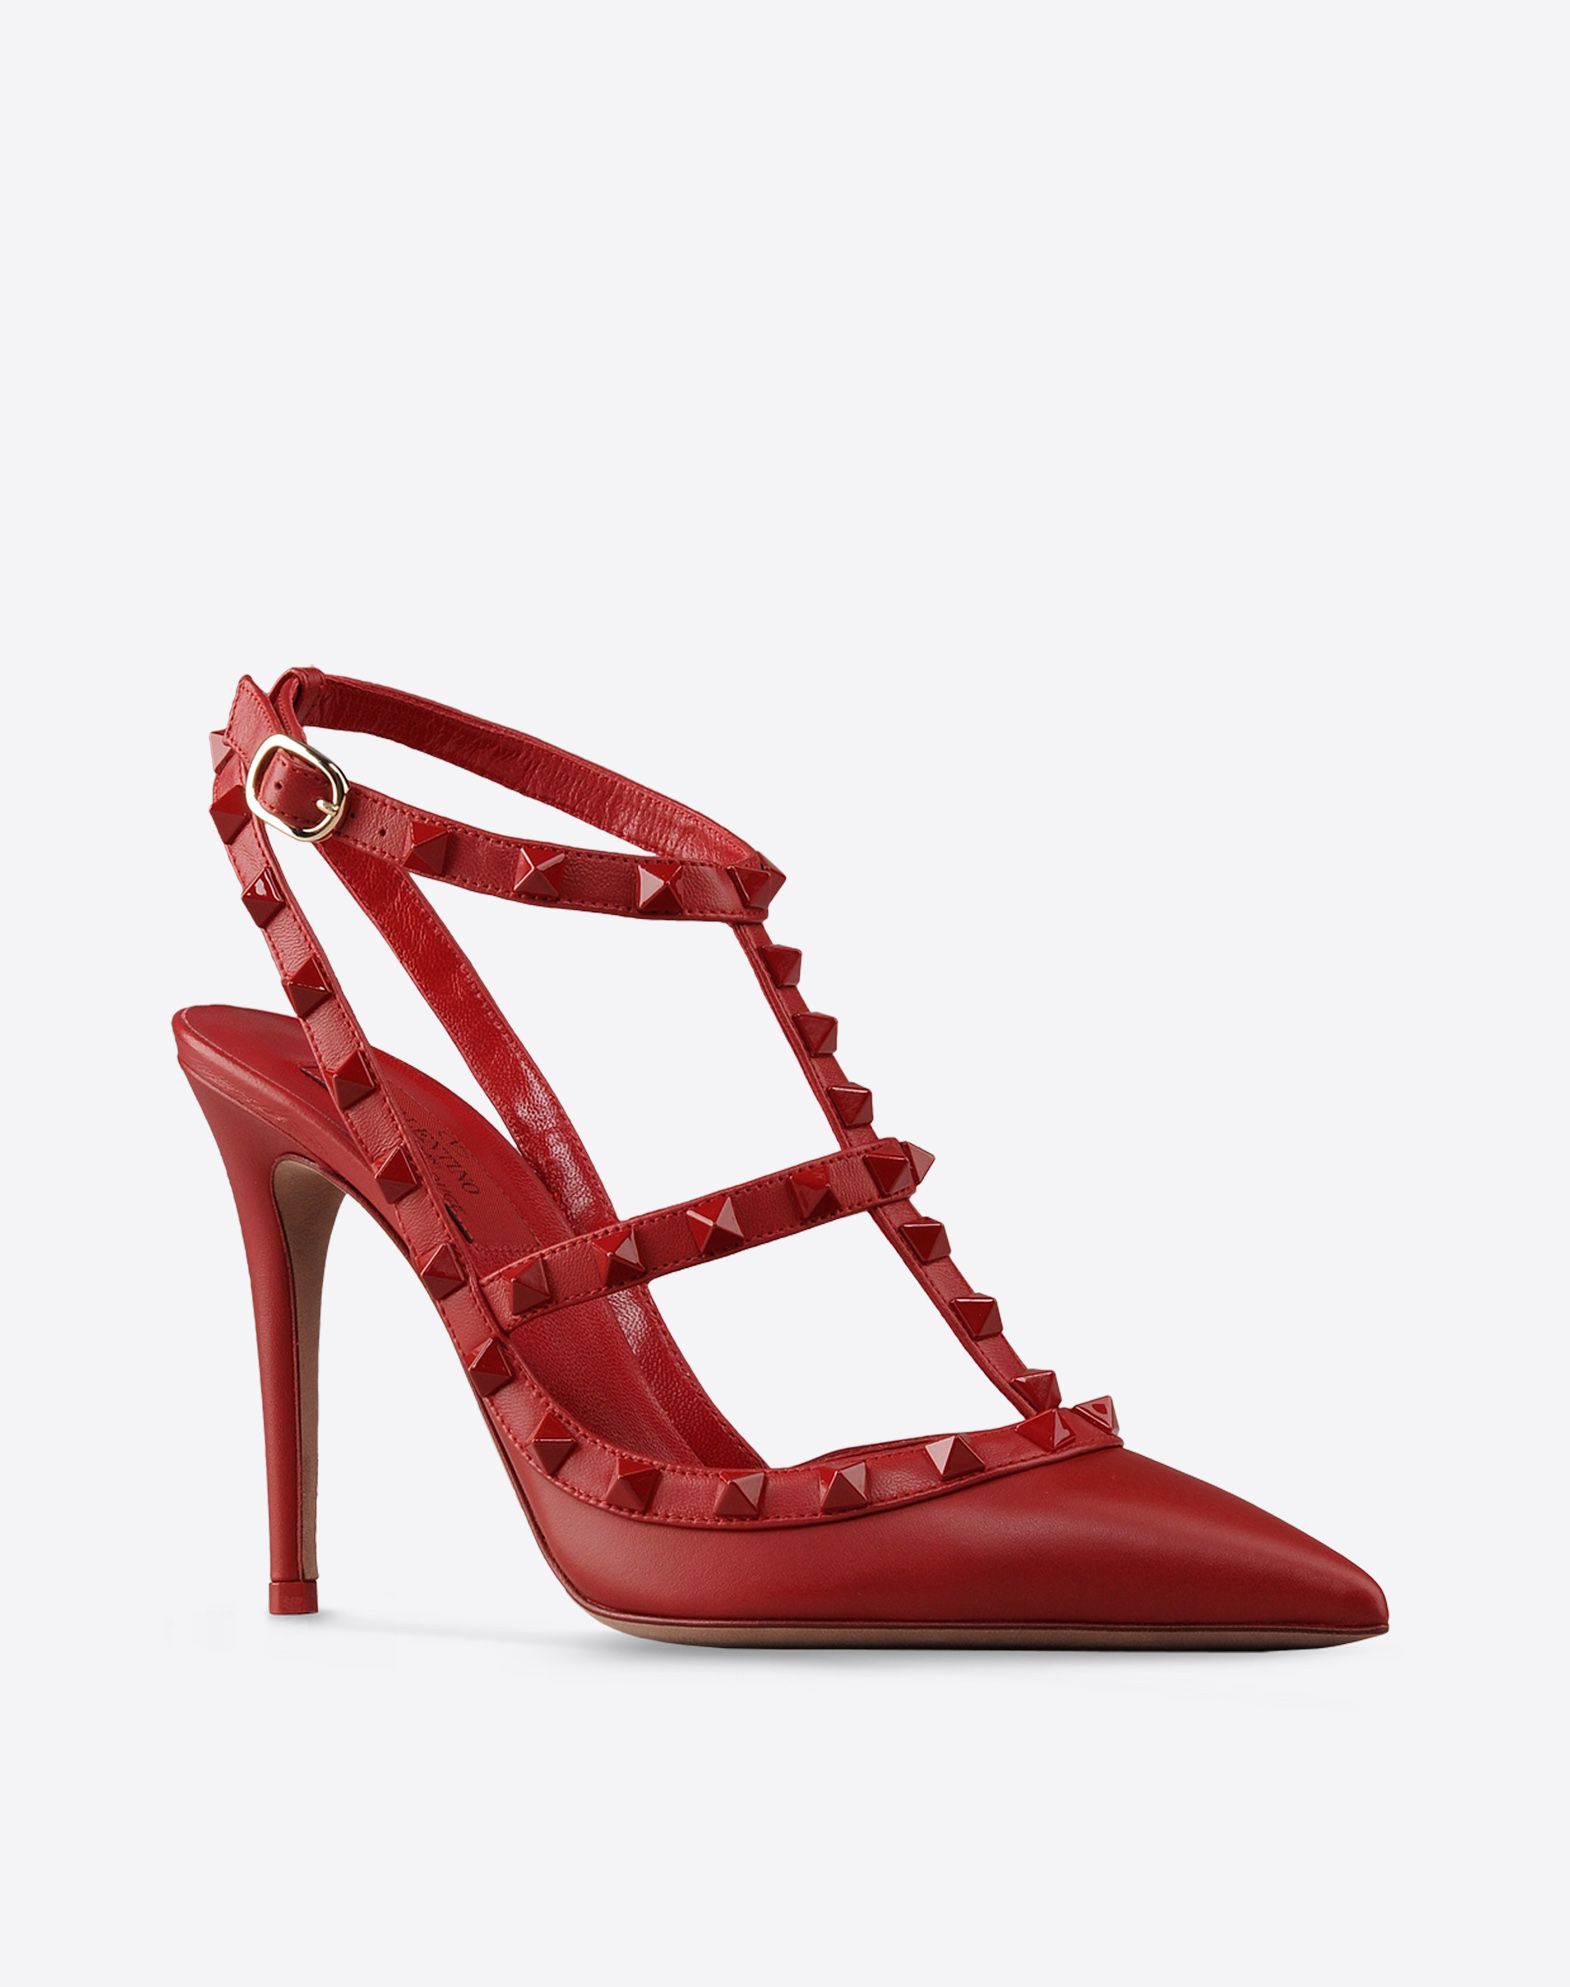 VALENTINO Solid color Side buckle closure Leather sole Contrasting applications Narrow toeline Covered heel  44569235ip